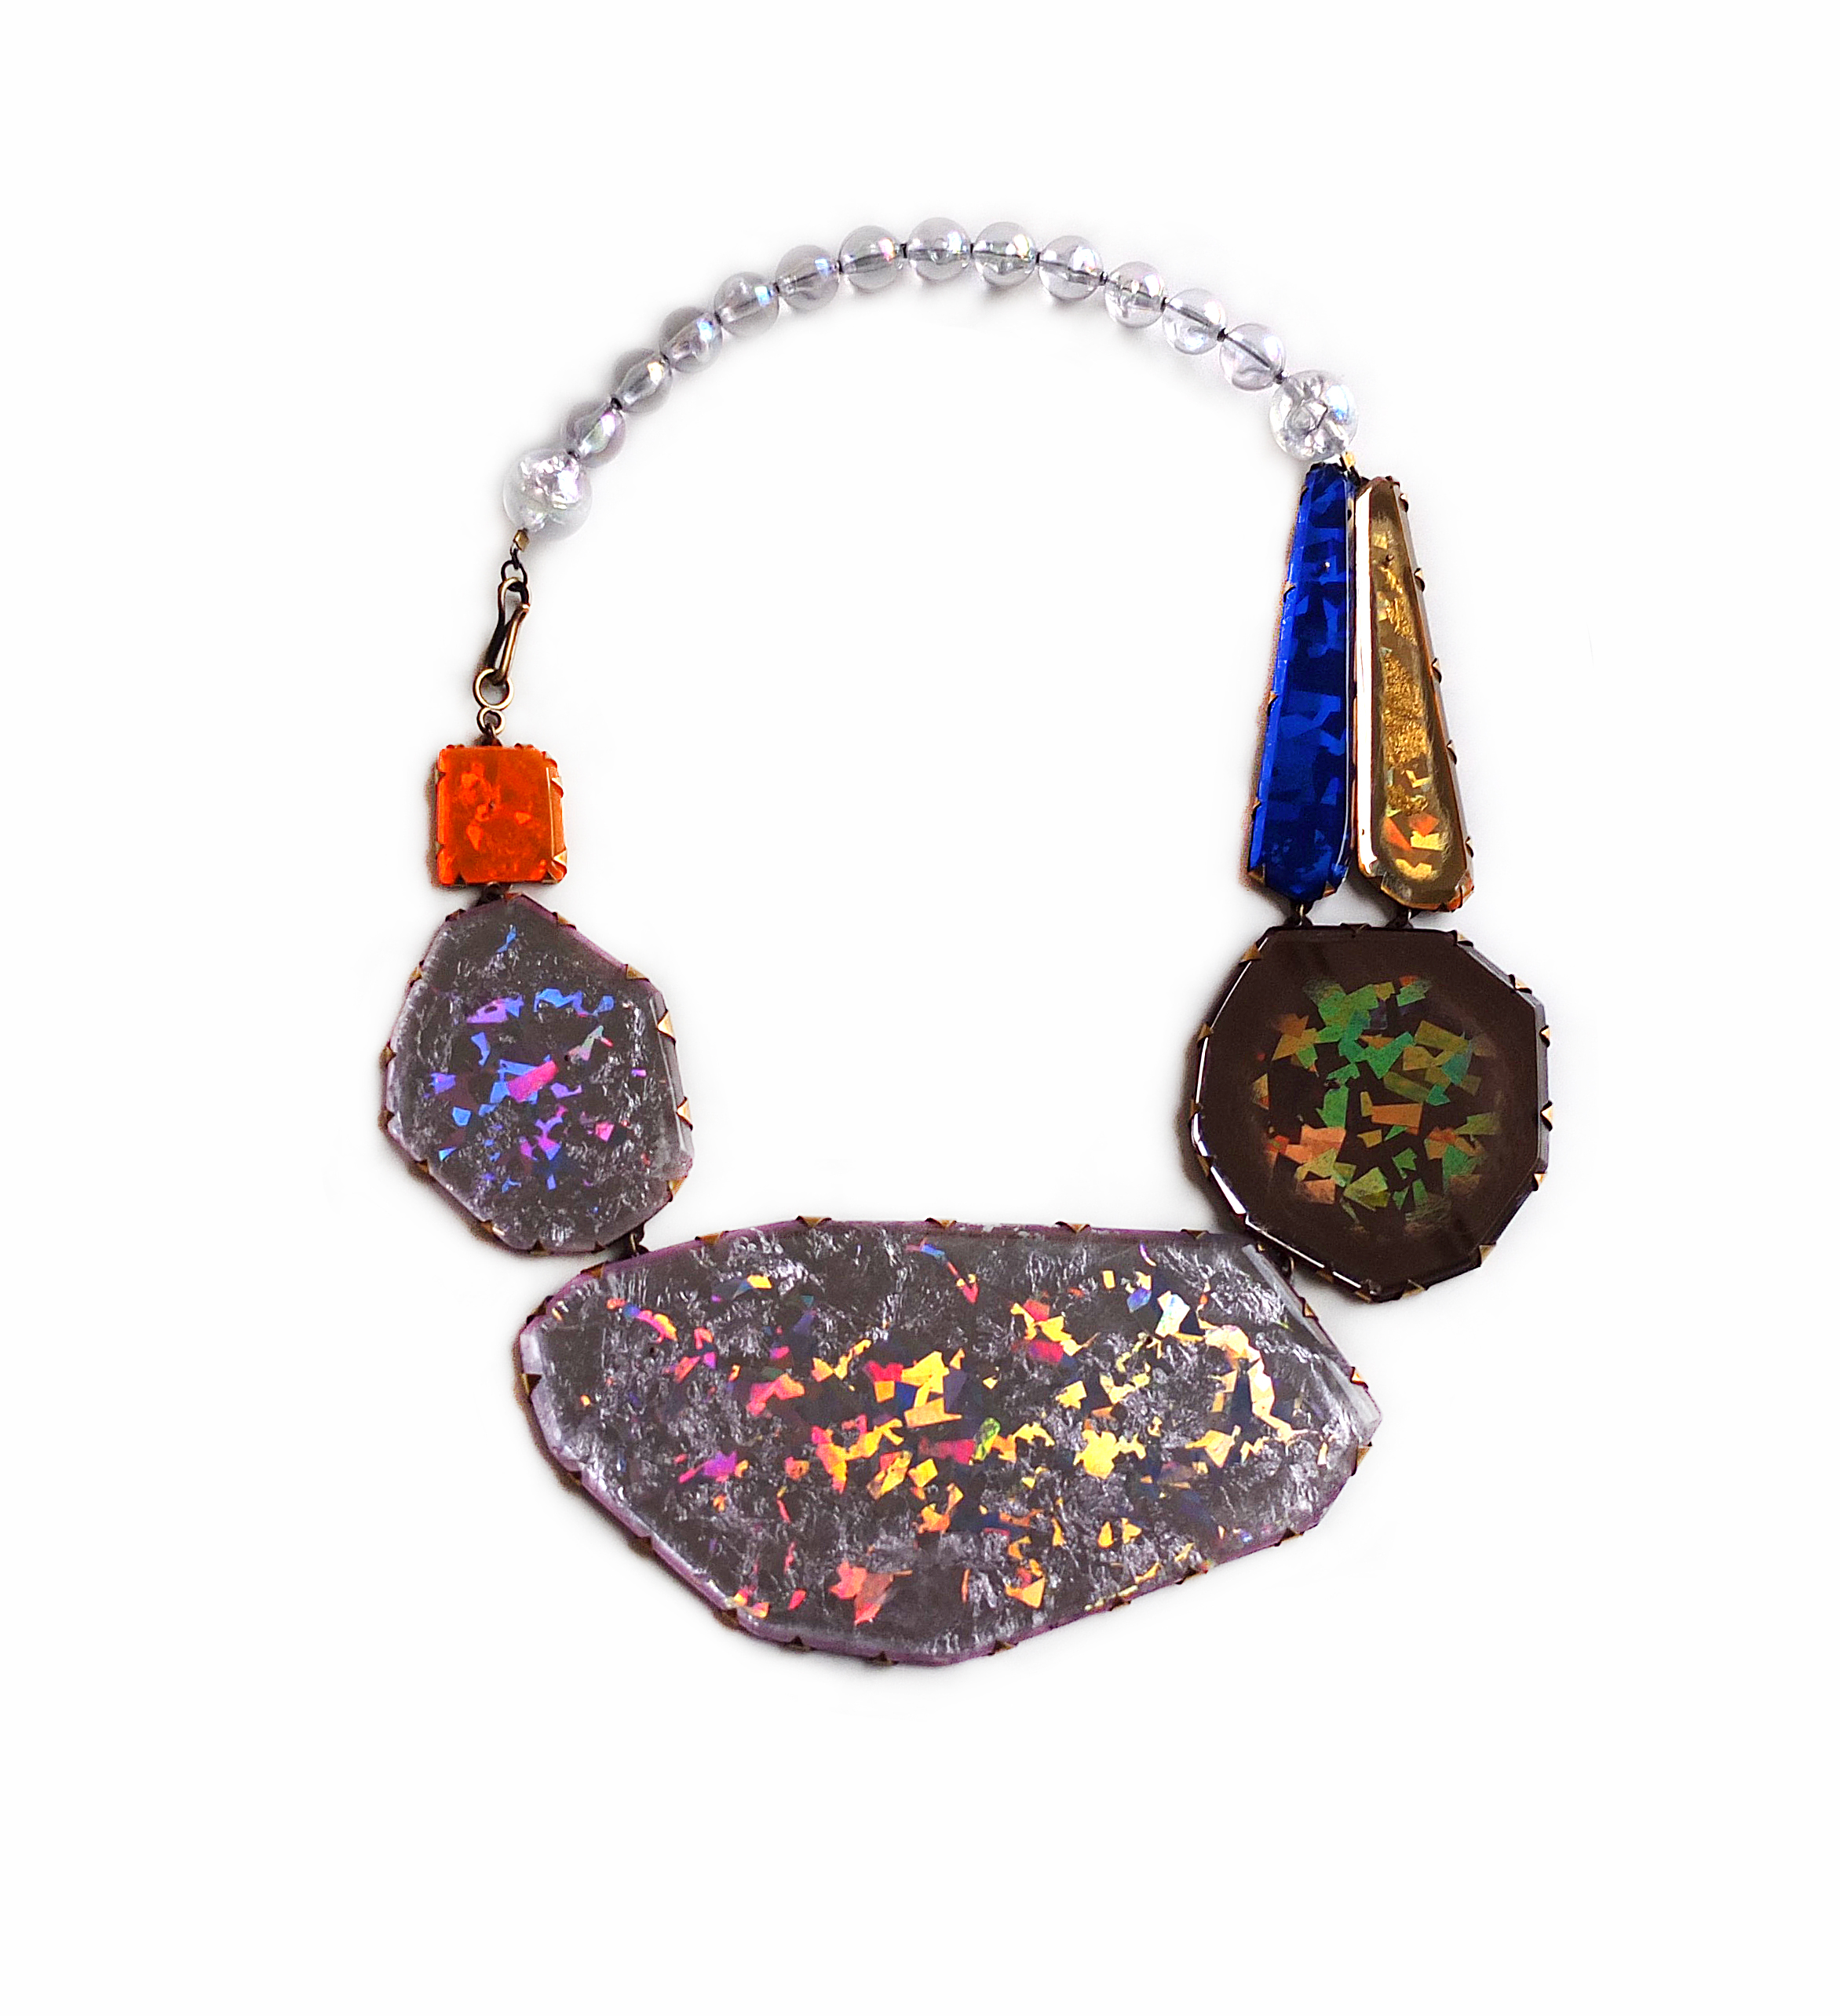 Nikki Couppee, Neogem Necklace, Plexiglass, brass, found objects